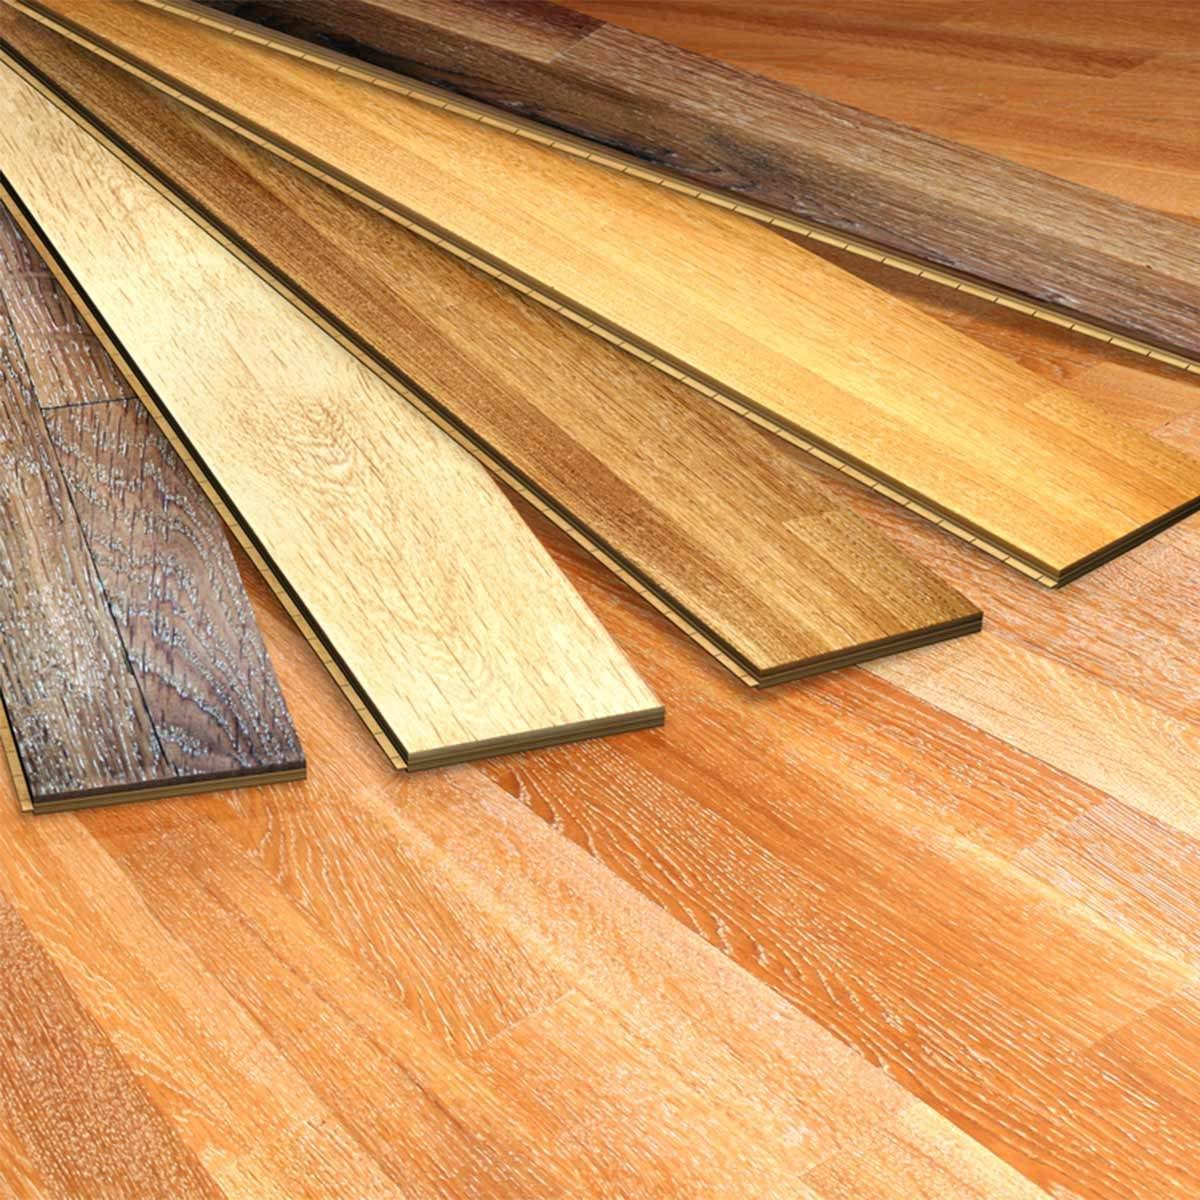 Rip up Carpeting and Install Hardwood or Laminate